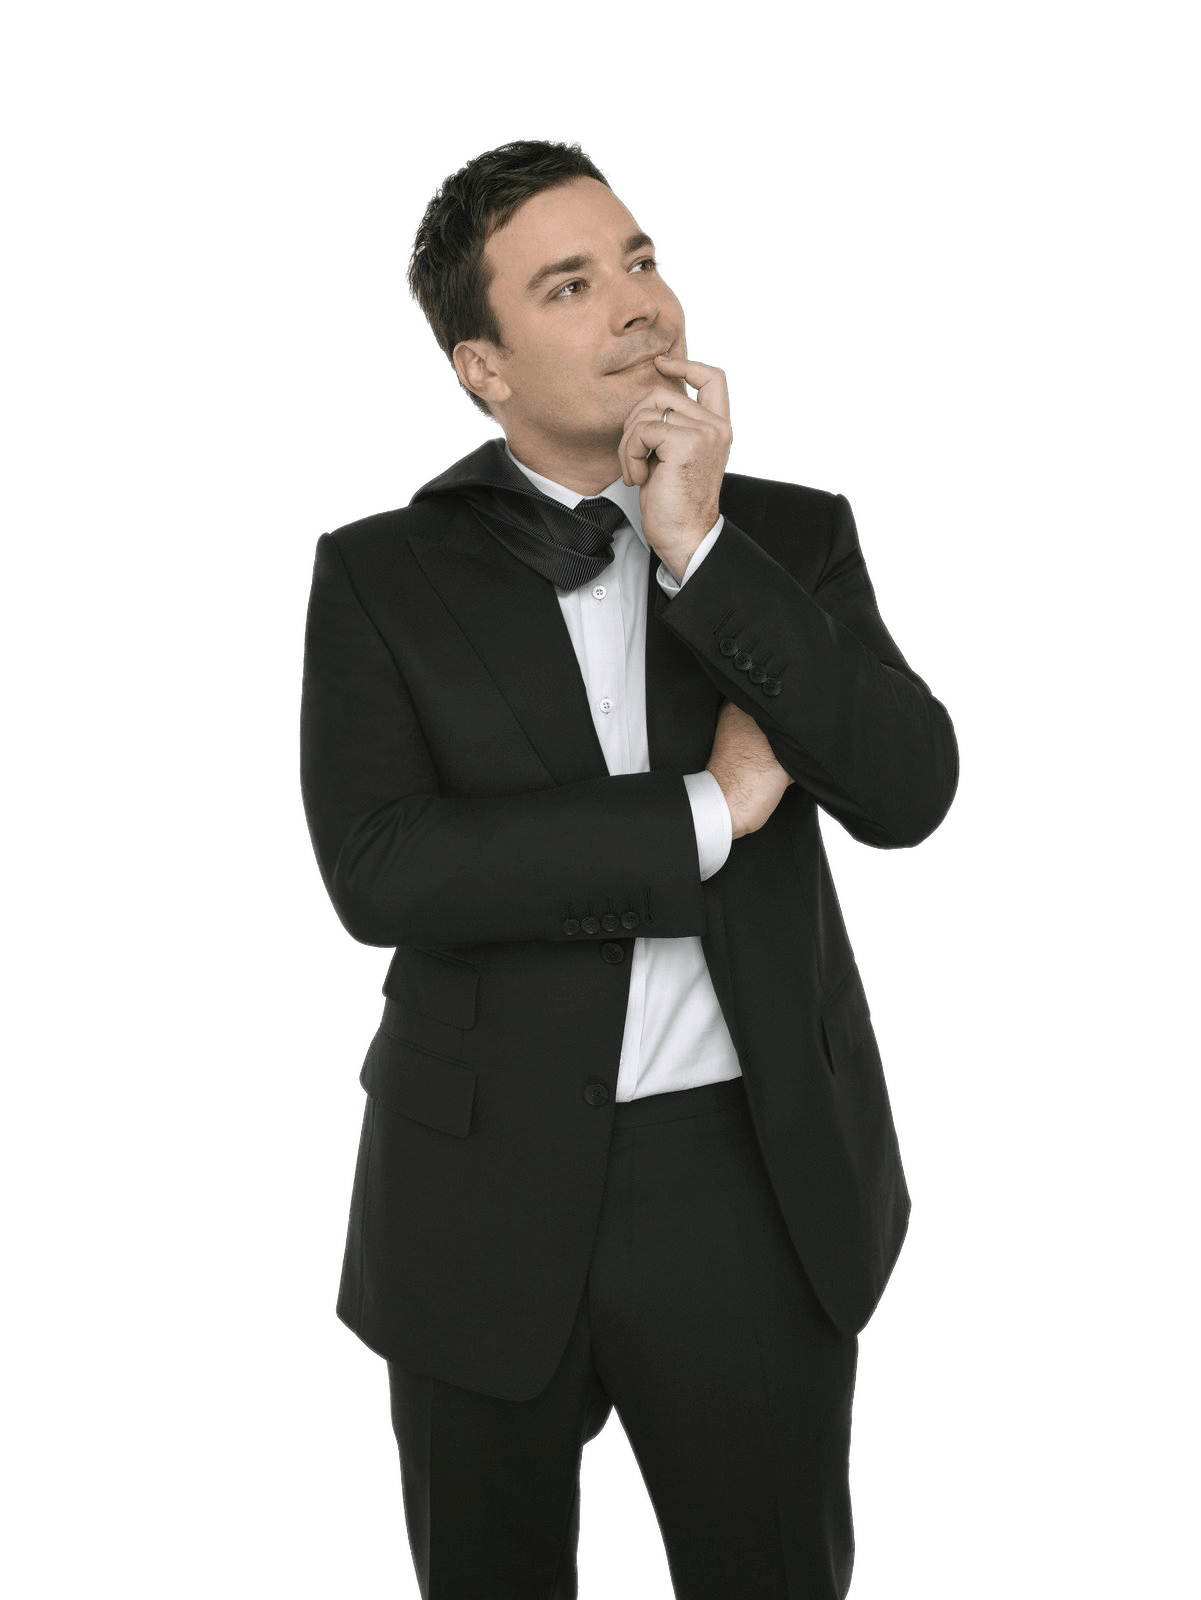 Jimmy Fallon Thinking - Side View Of A Person Standing PNG